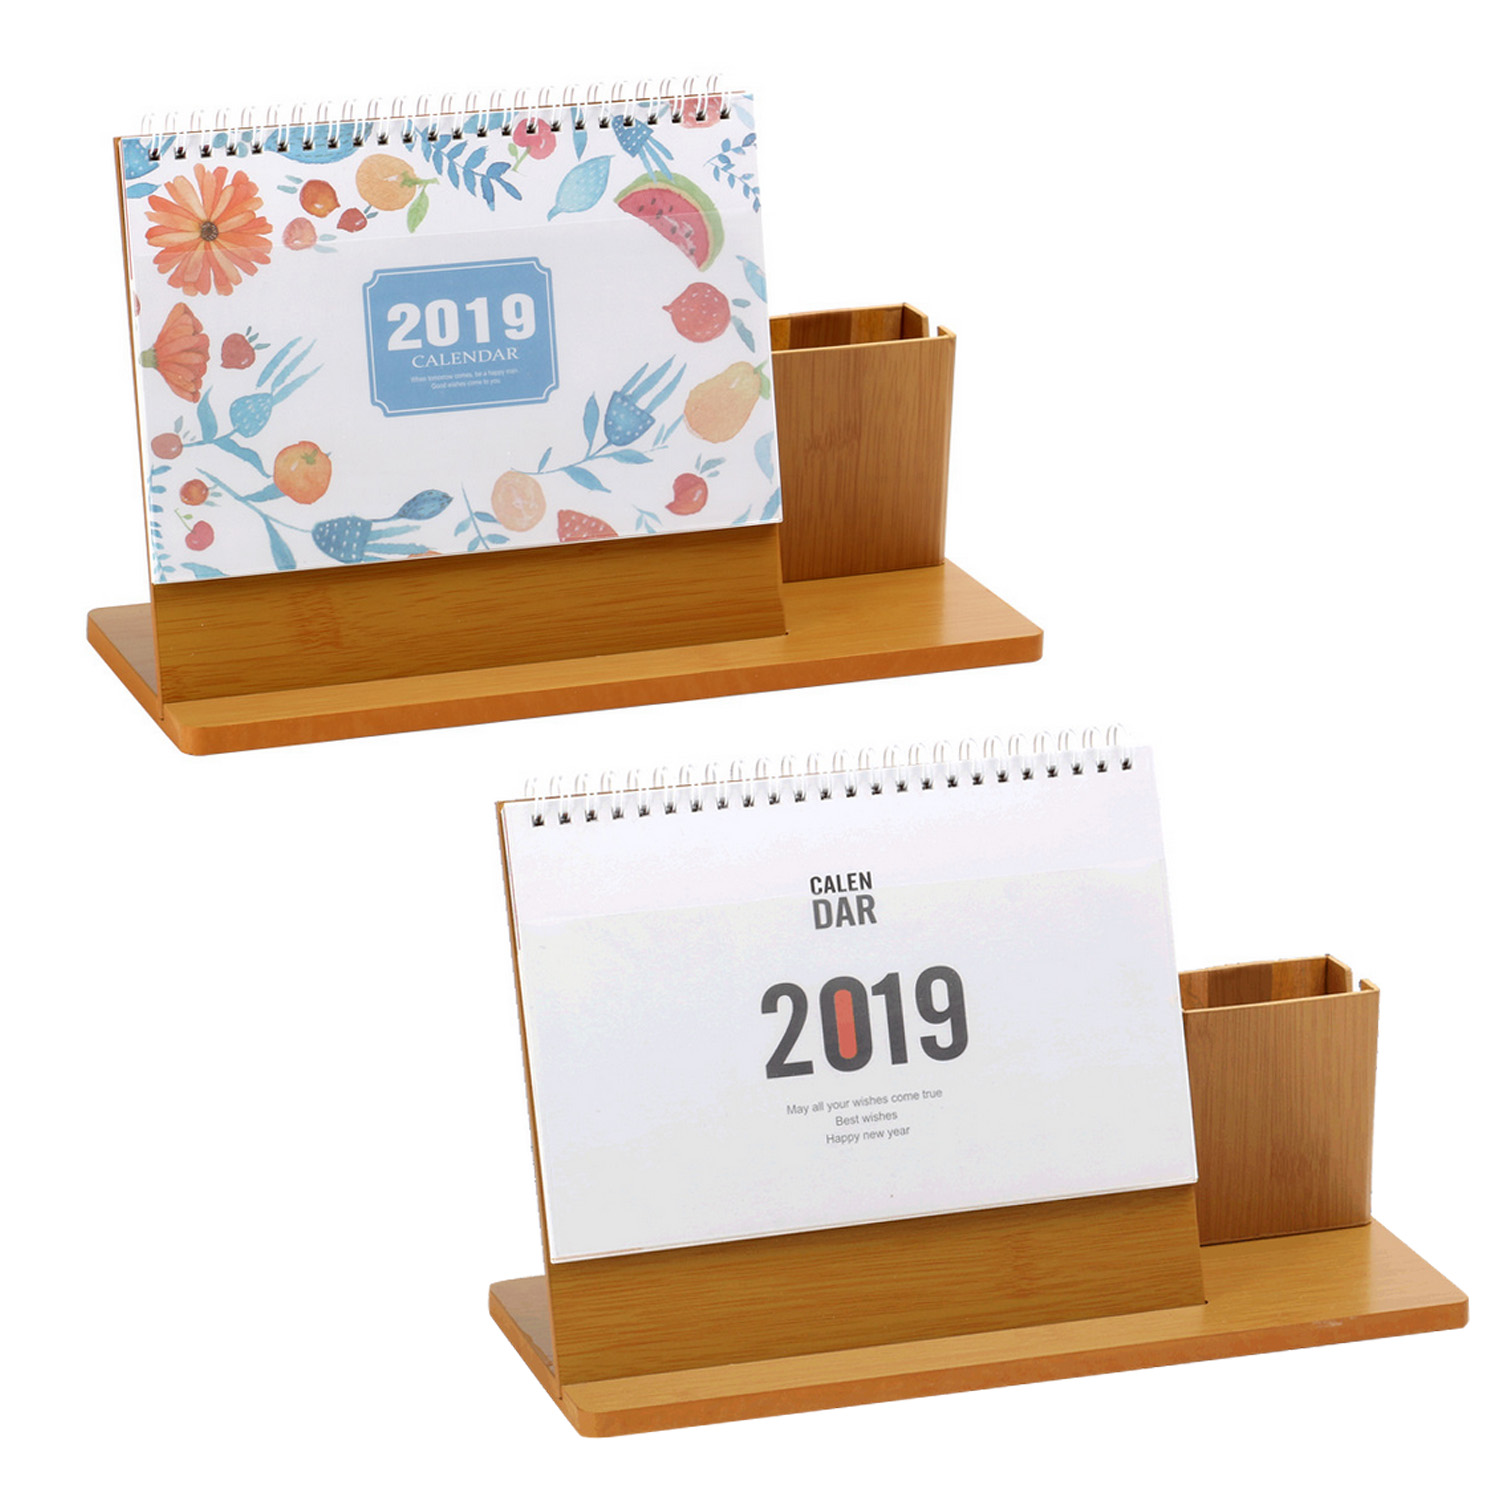 Cute Small Desktop Table Calendar Students Stationery Promotion Gifts New Arrival 2019 Mini Pocket Size Paper Calendar